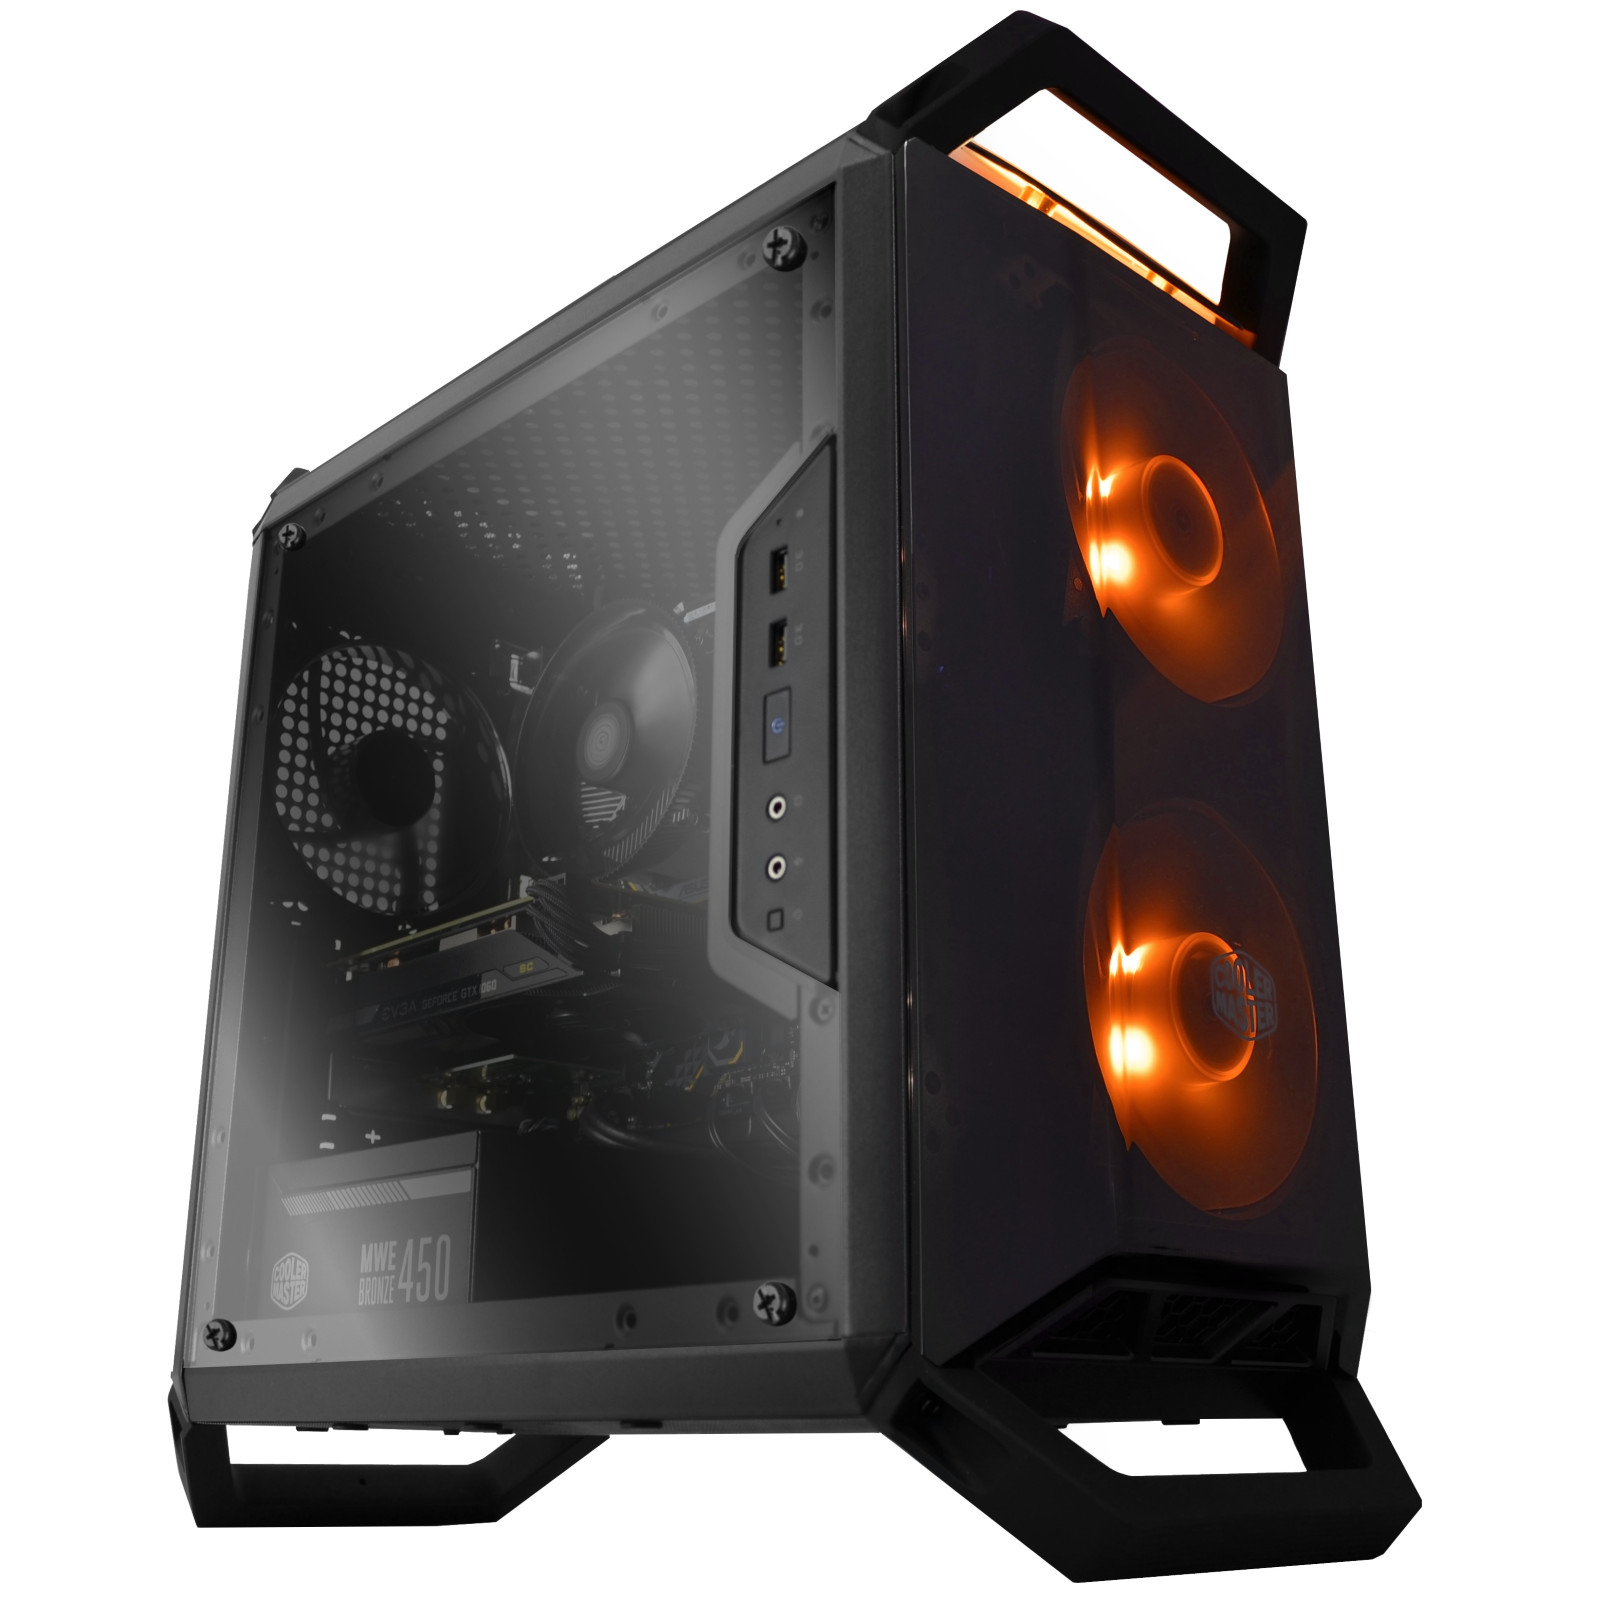 GGPC Titan GTX 1060 Mini Gaming PC